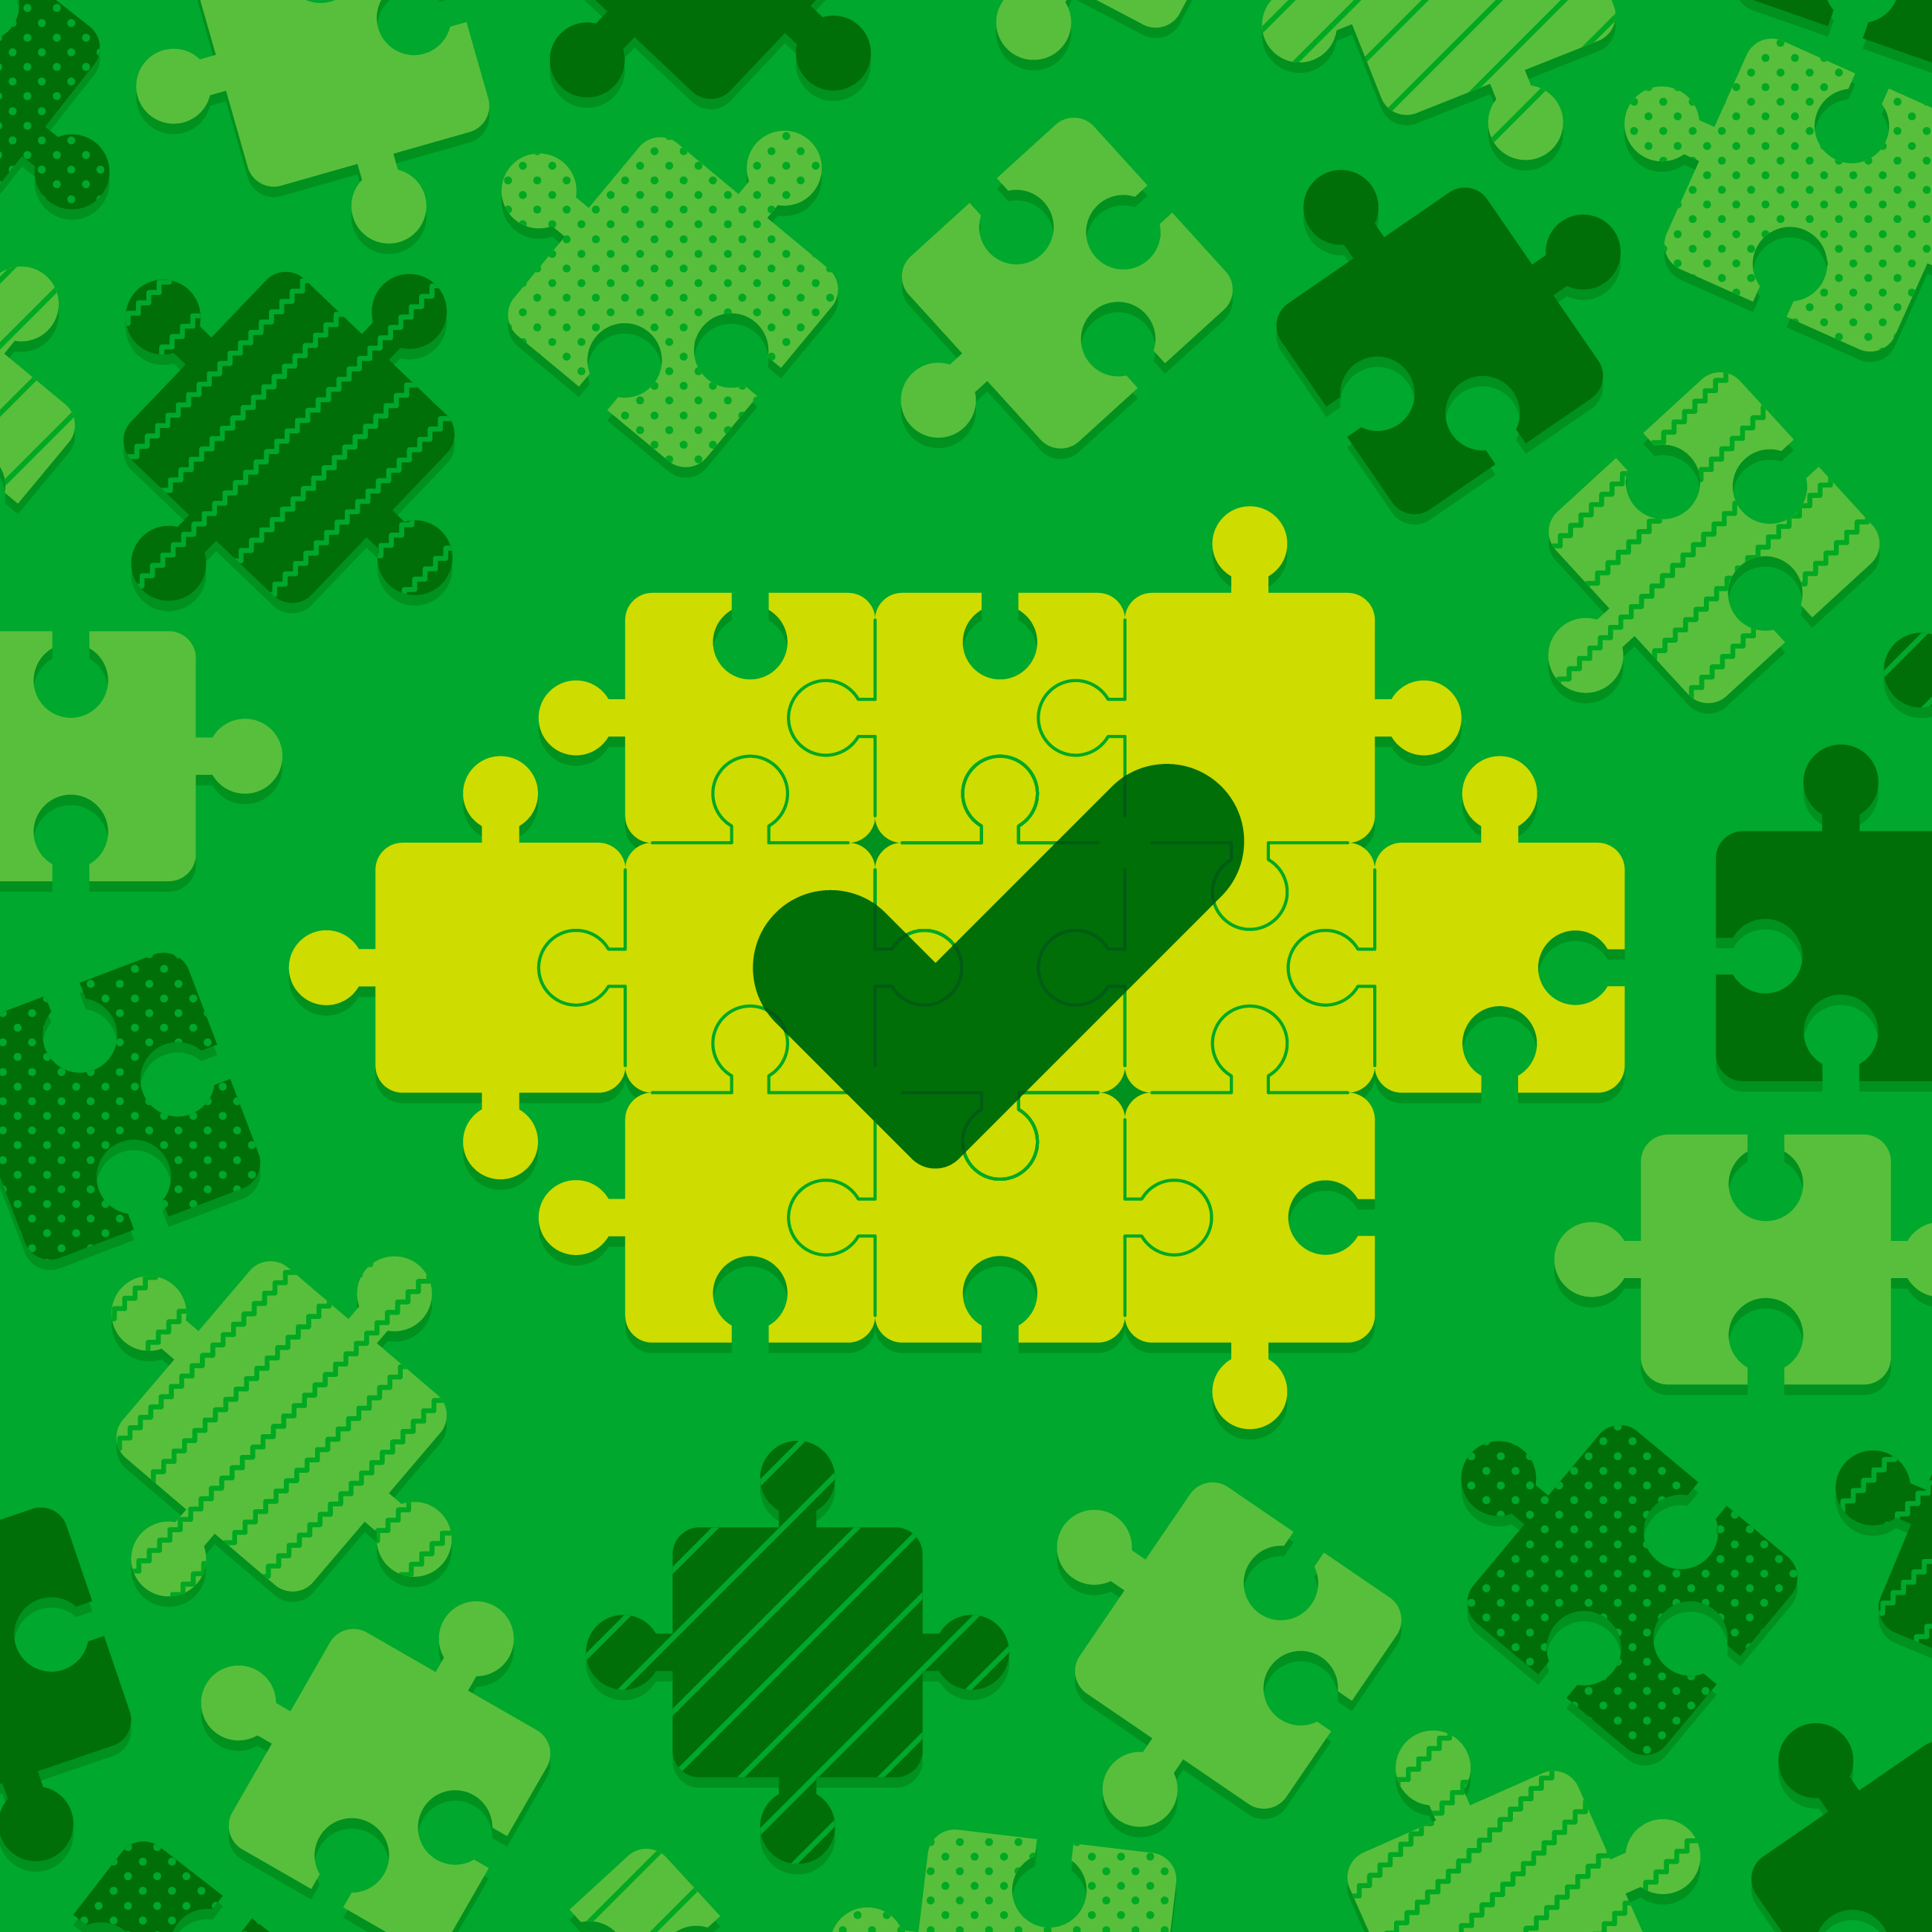 Illustration of puzzle pieces coming together to represent getting organized.